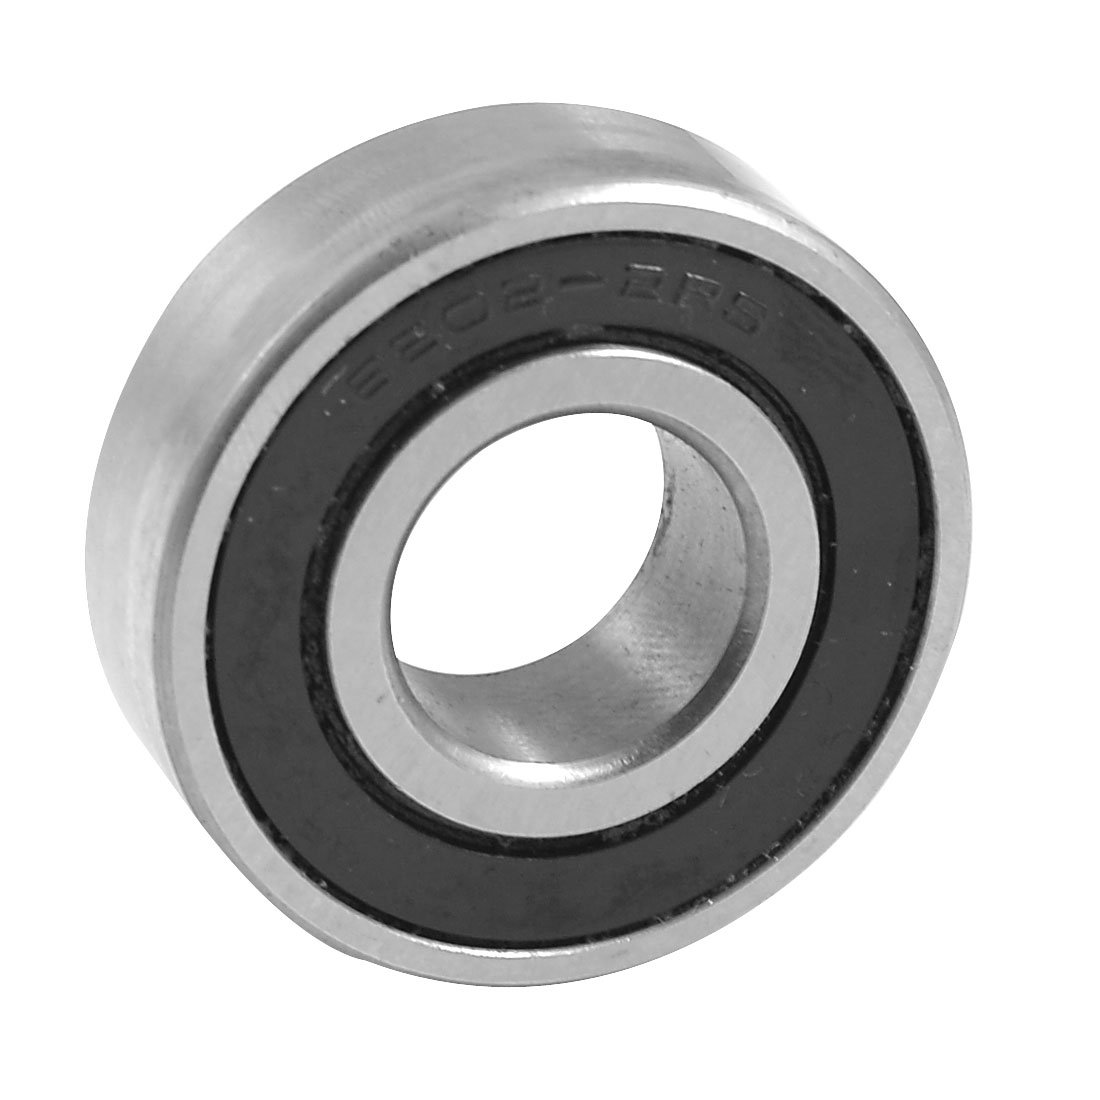 6202-2RS Shielded 15mm X 35mm X 11mm Deep Groove Ball Bearing